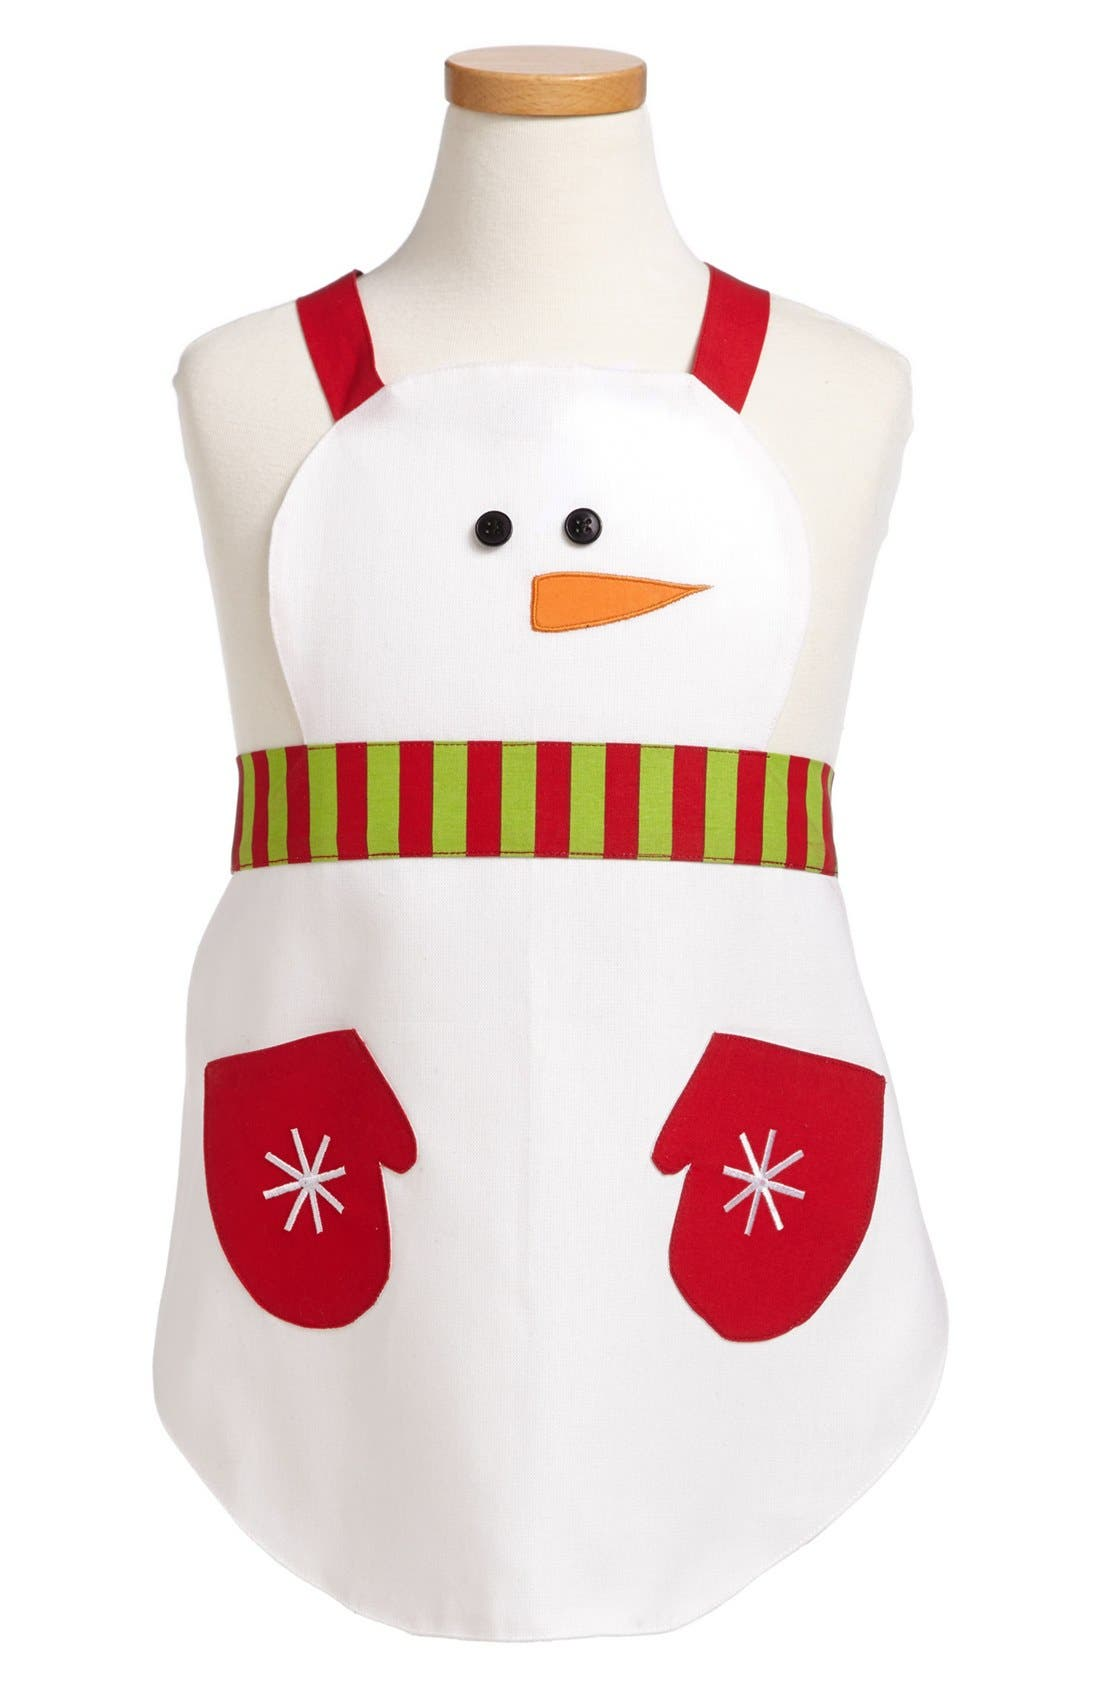 Alternate Image 1 Selected - Design Imports Snowman Child's Apron